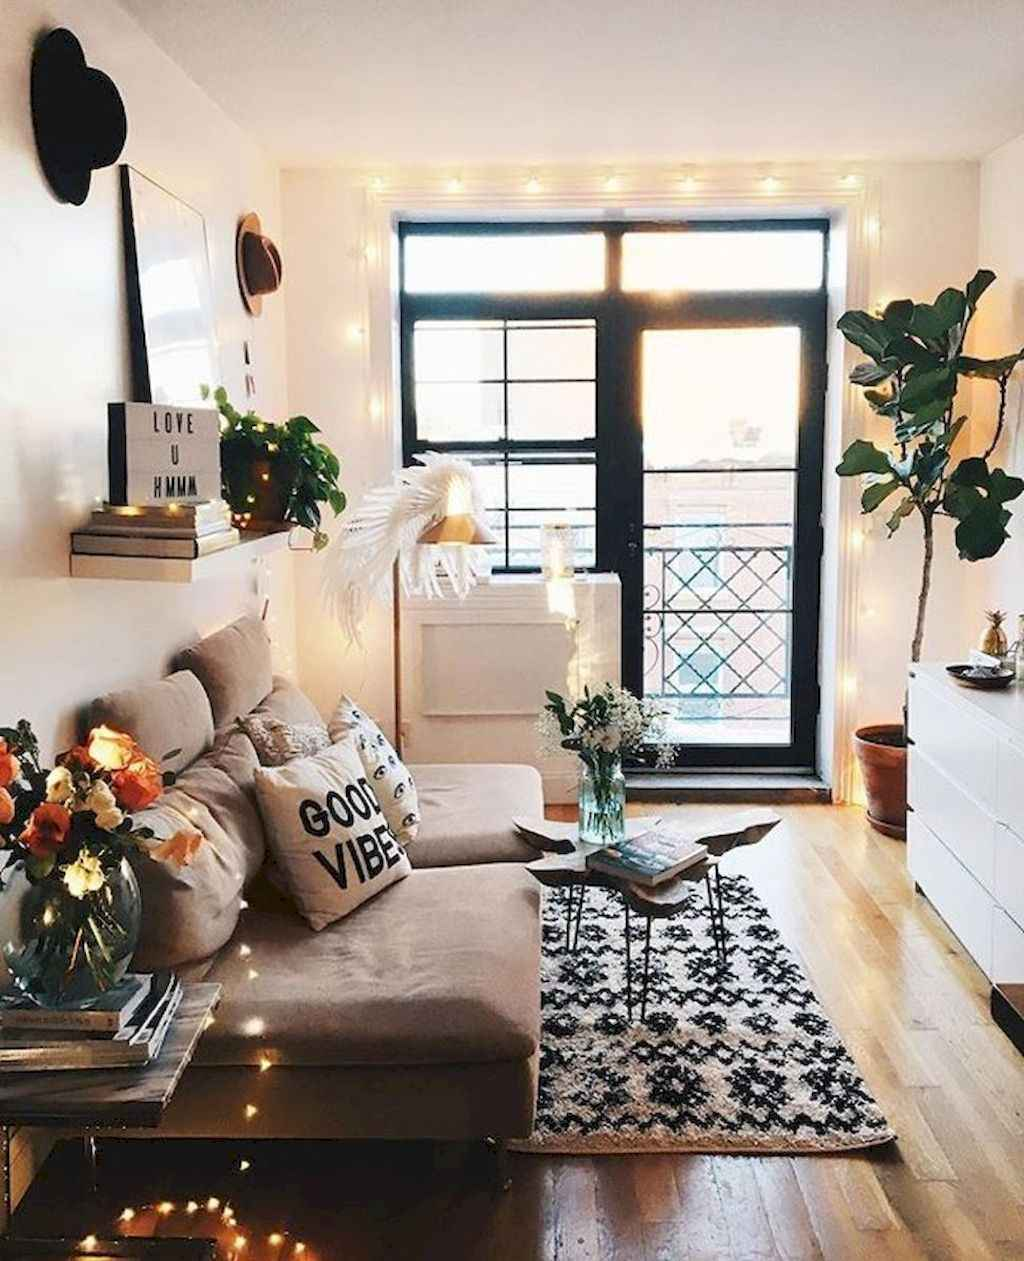 Clever college apartment decorating ideas on a budget (52)